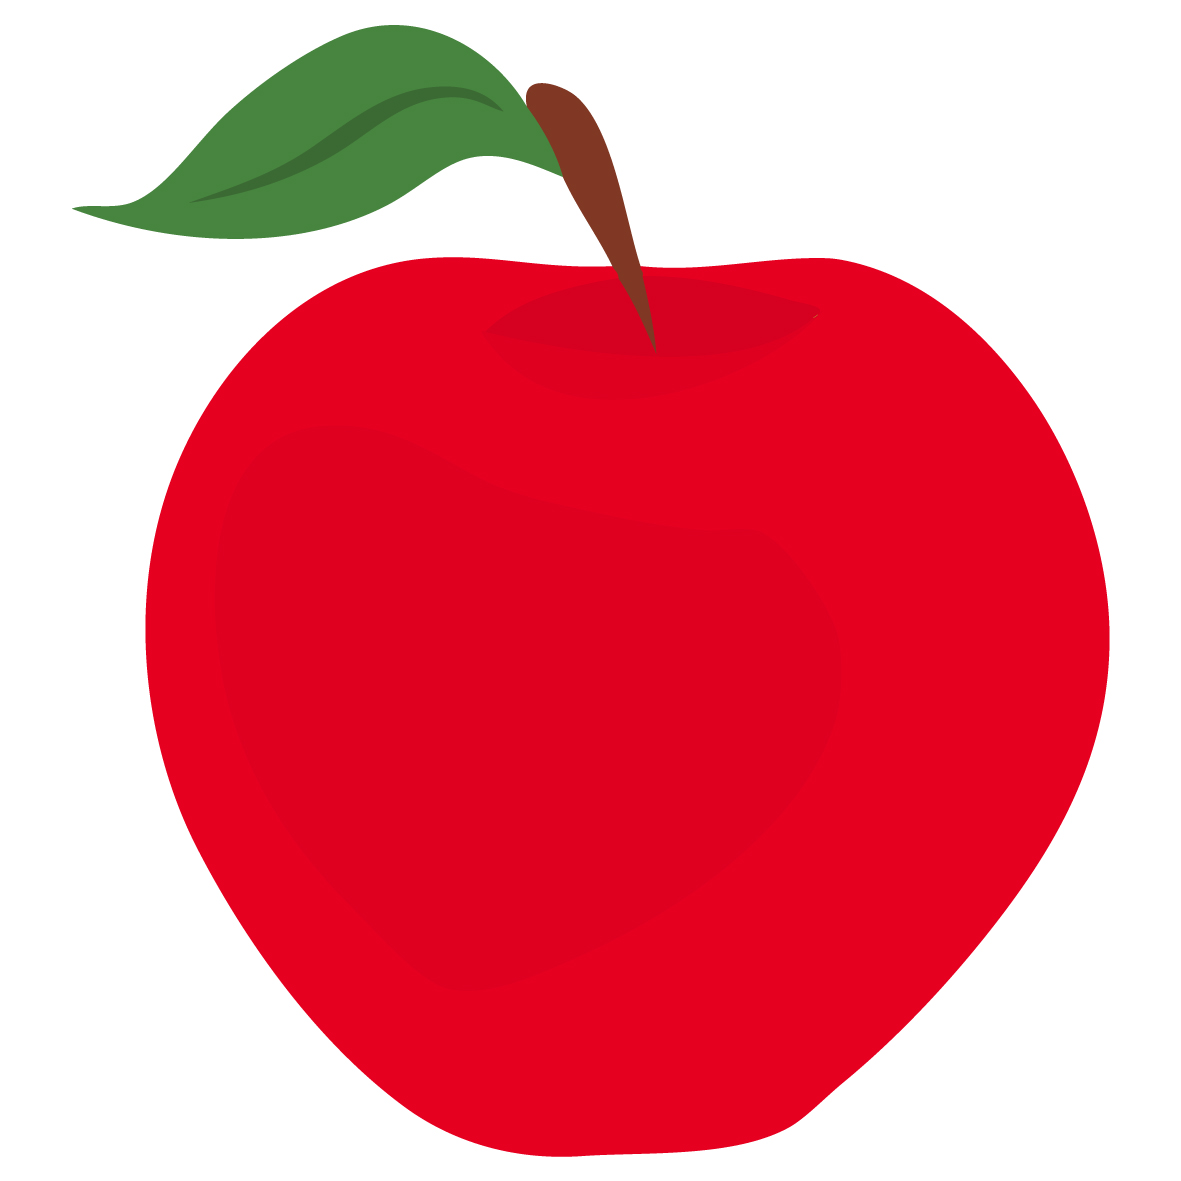 Red Apple Clipart - Clipart Kid